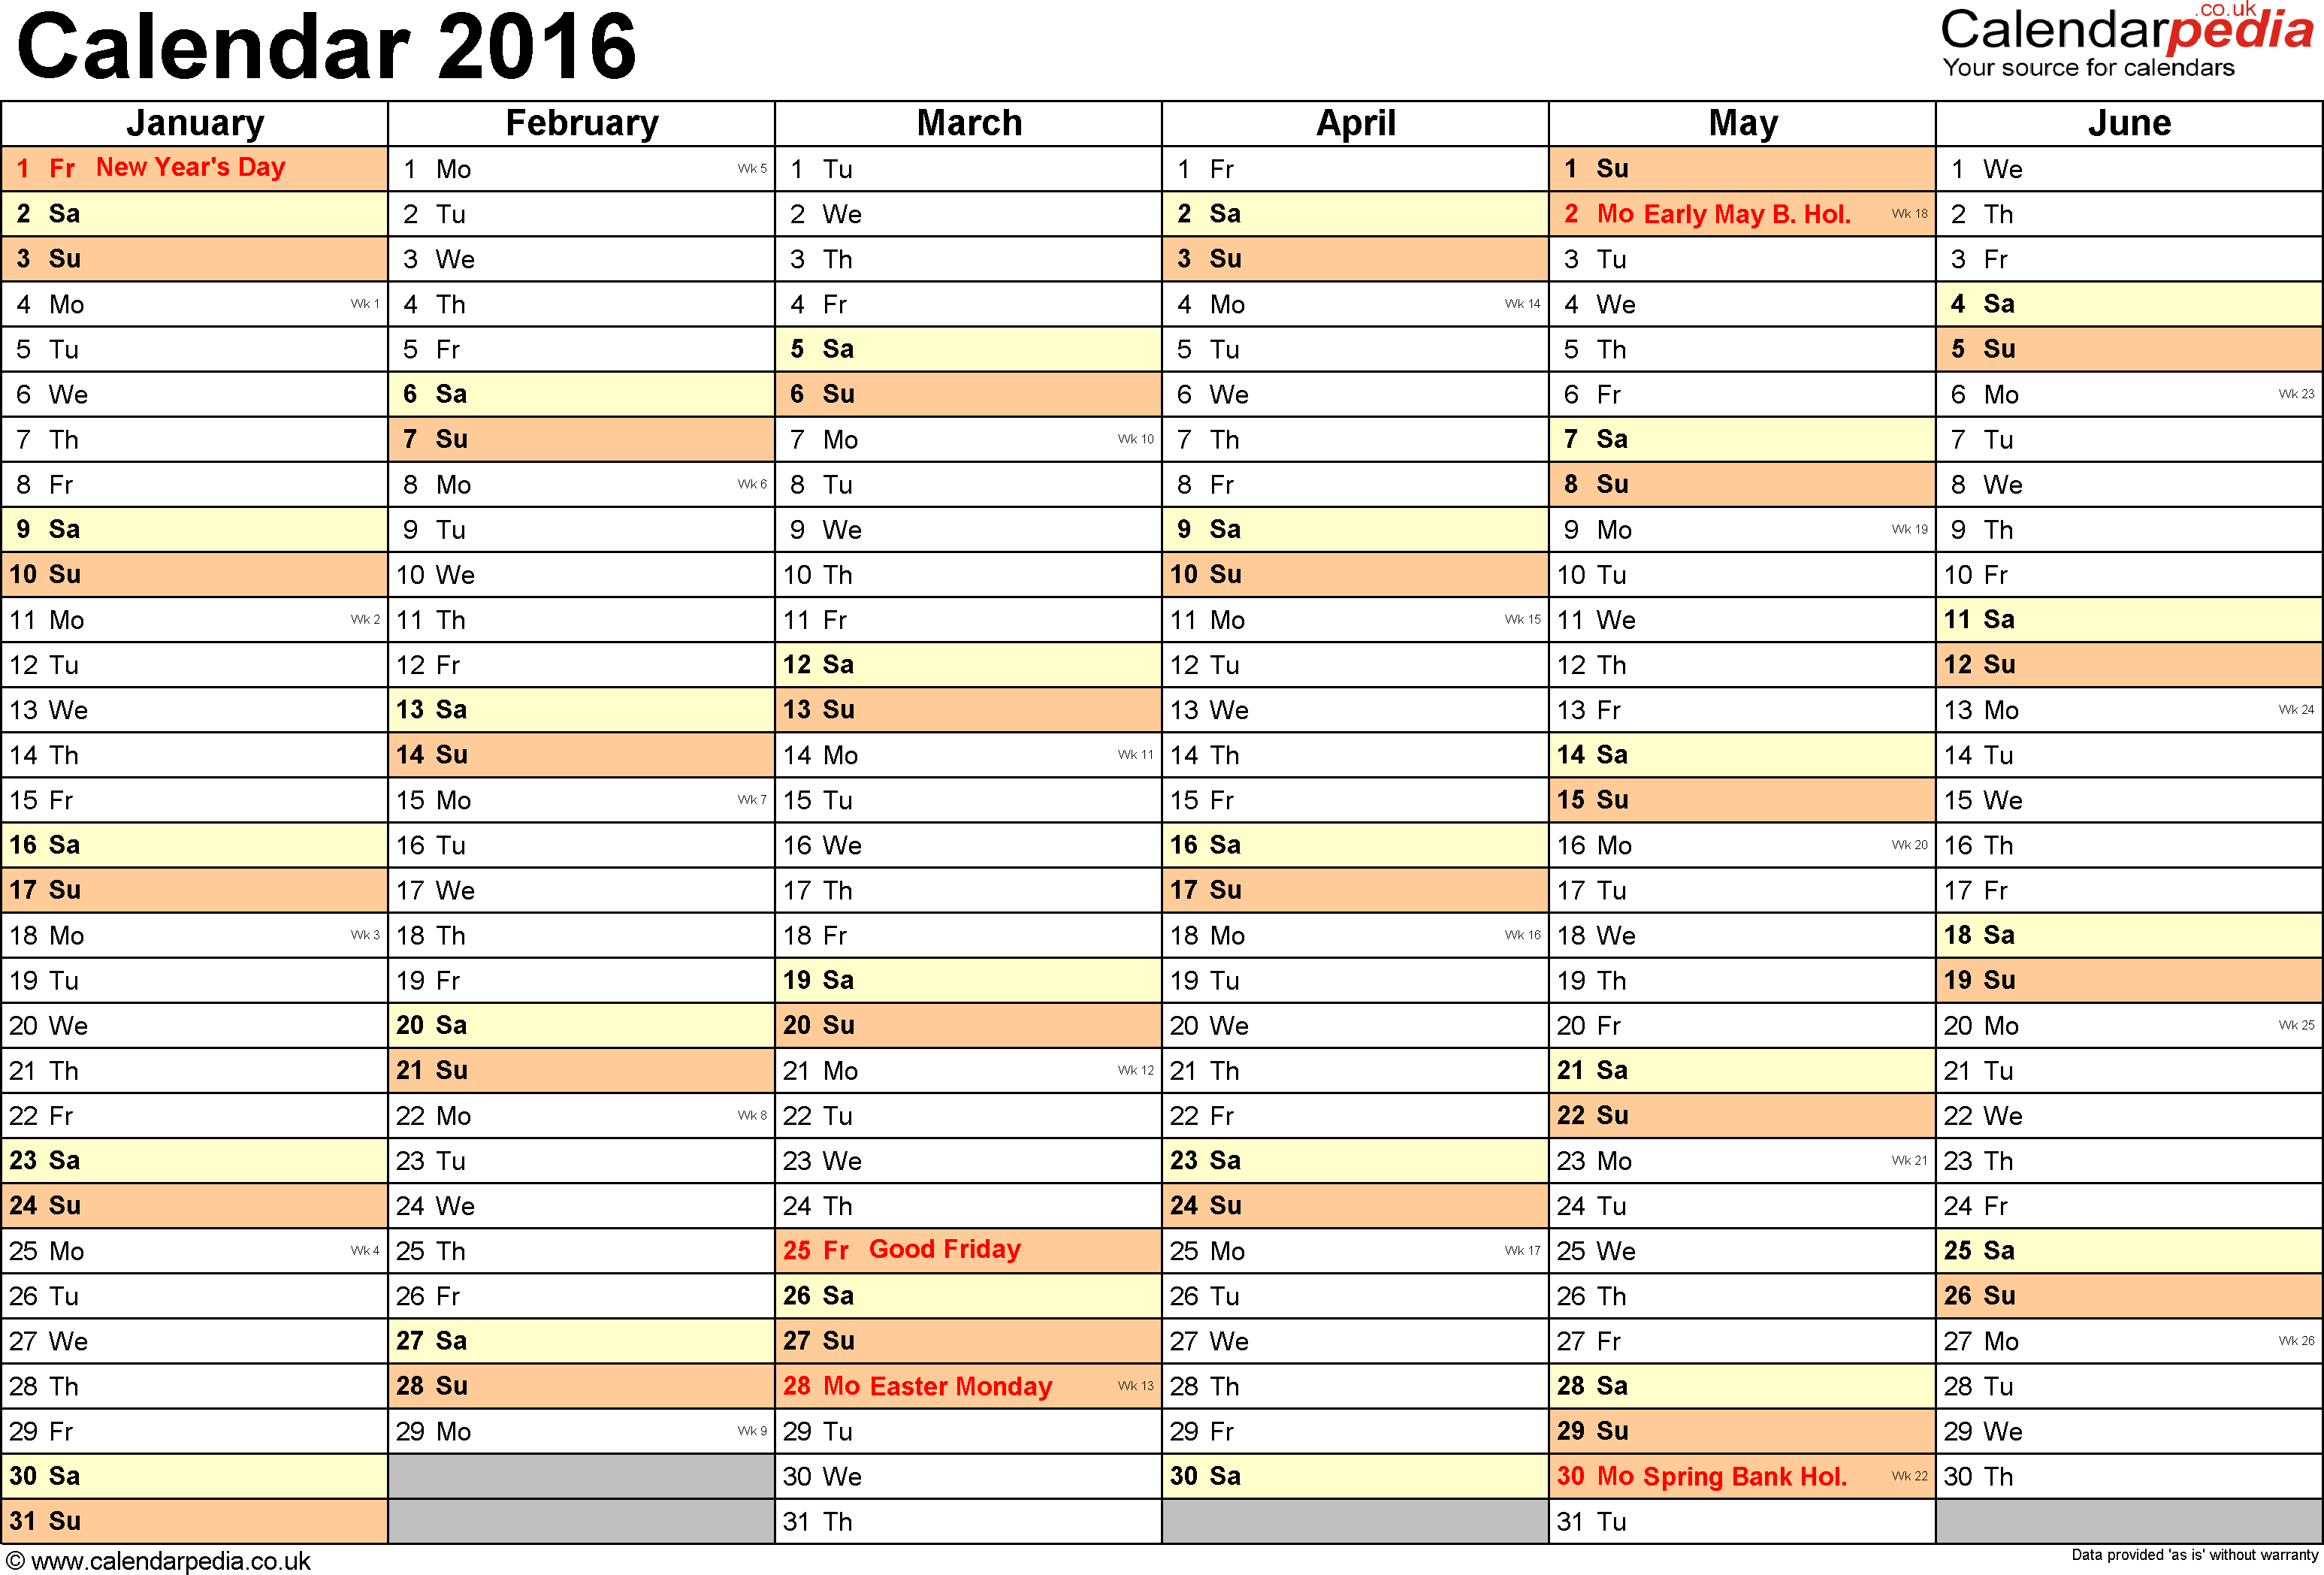 Template 3: Yearly calendar 2016 as PDF template, landscape orientation, 2 pages, months horizontally, days vertically, with UK bank holidays and week numbers